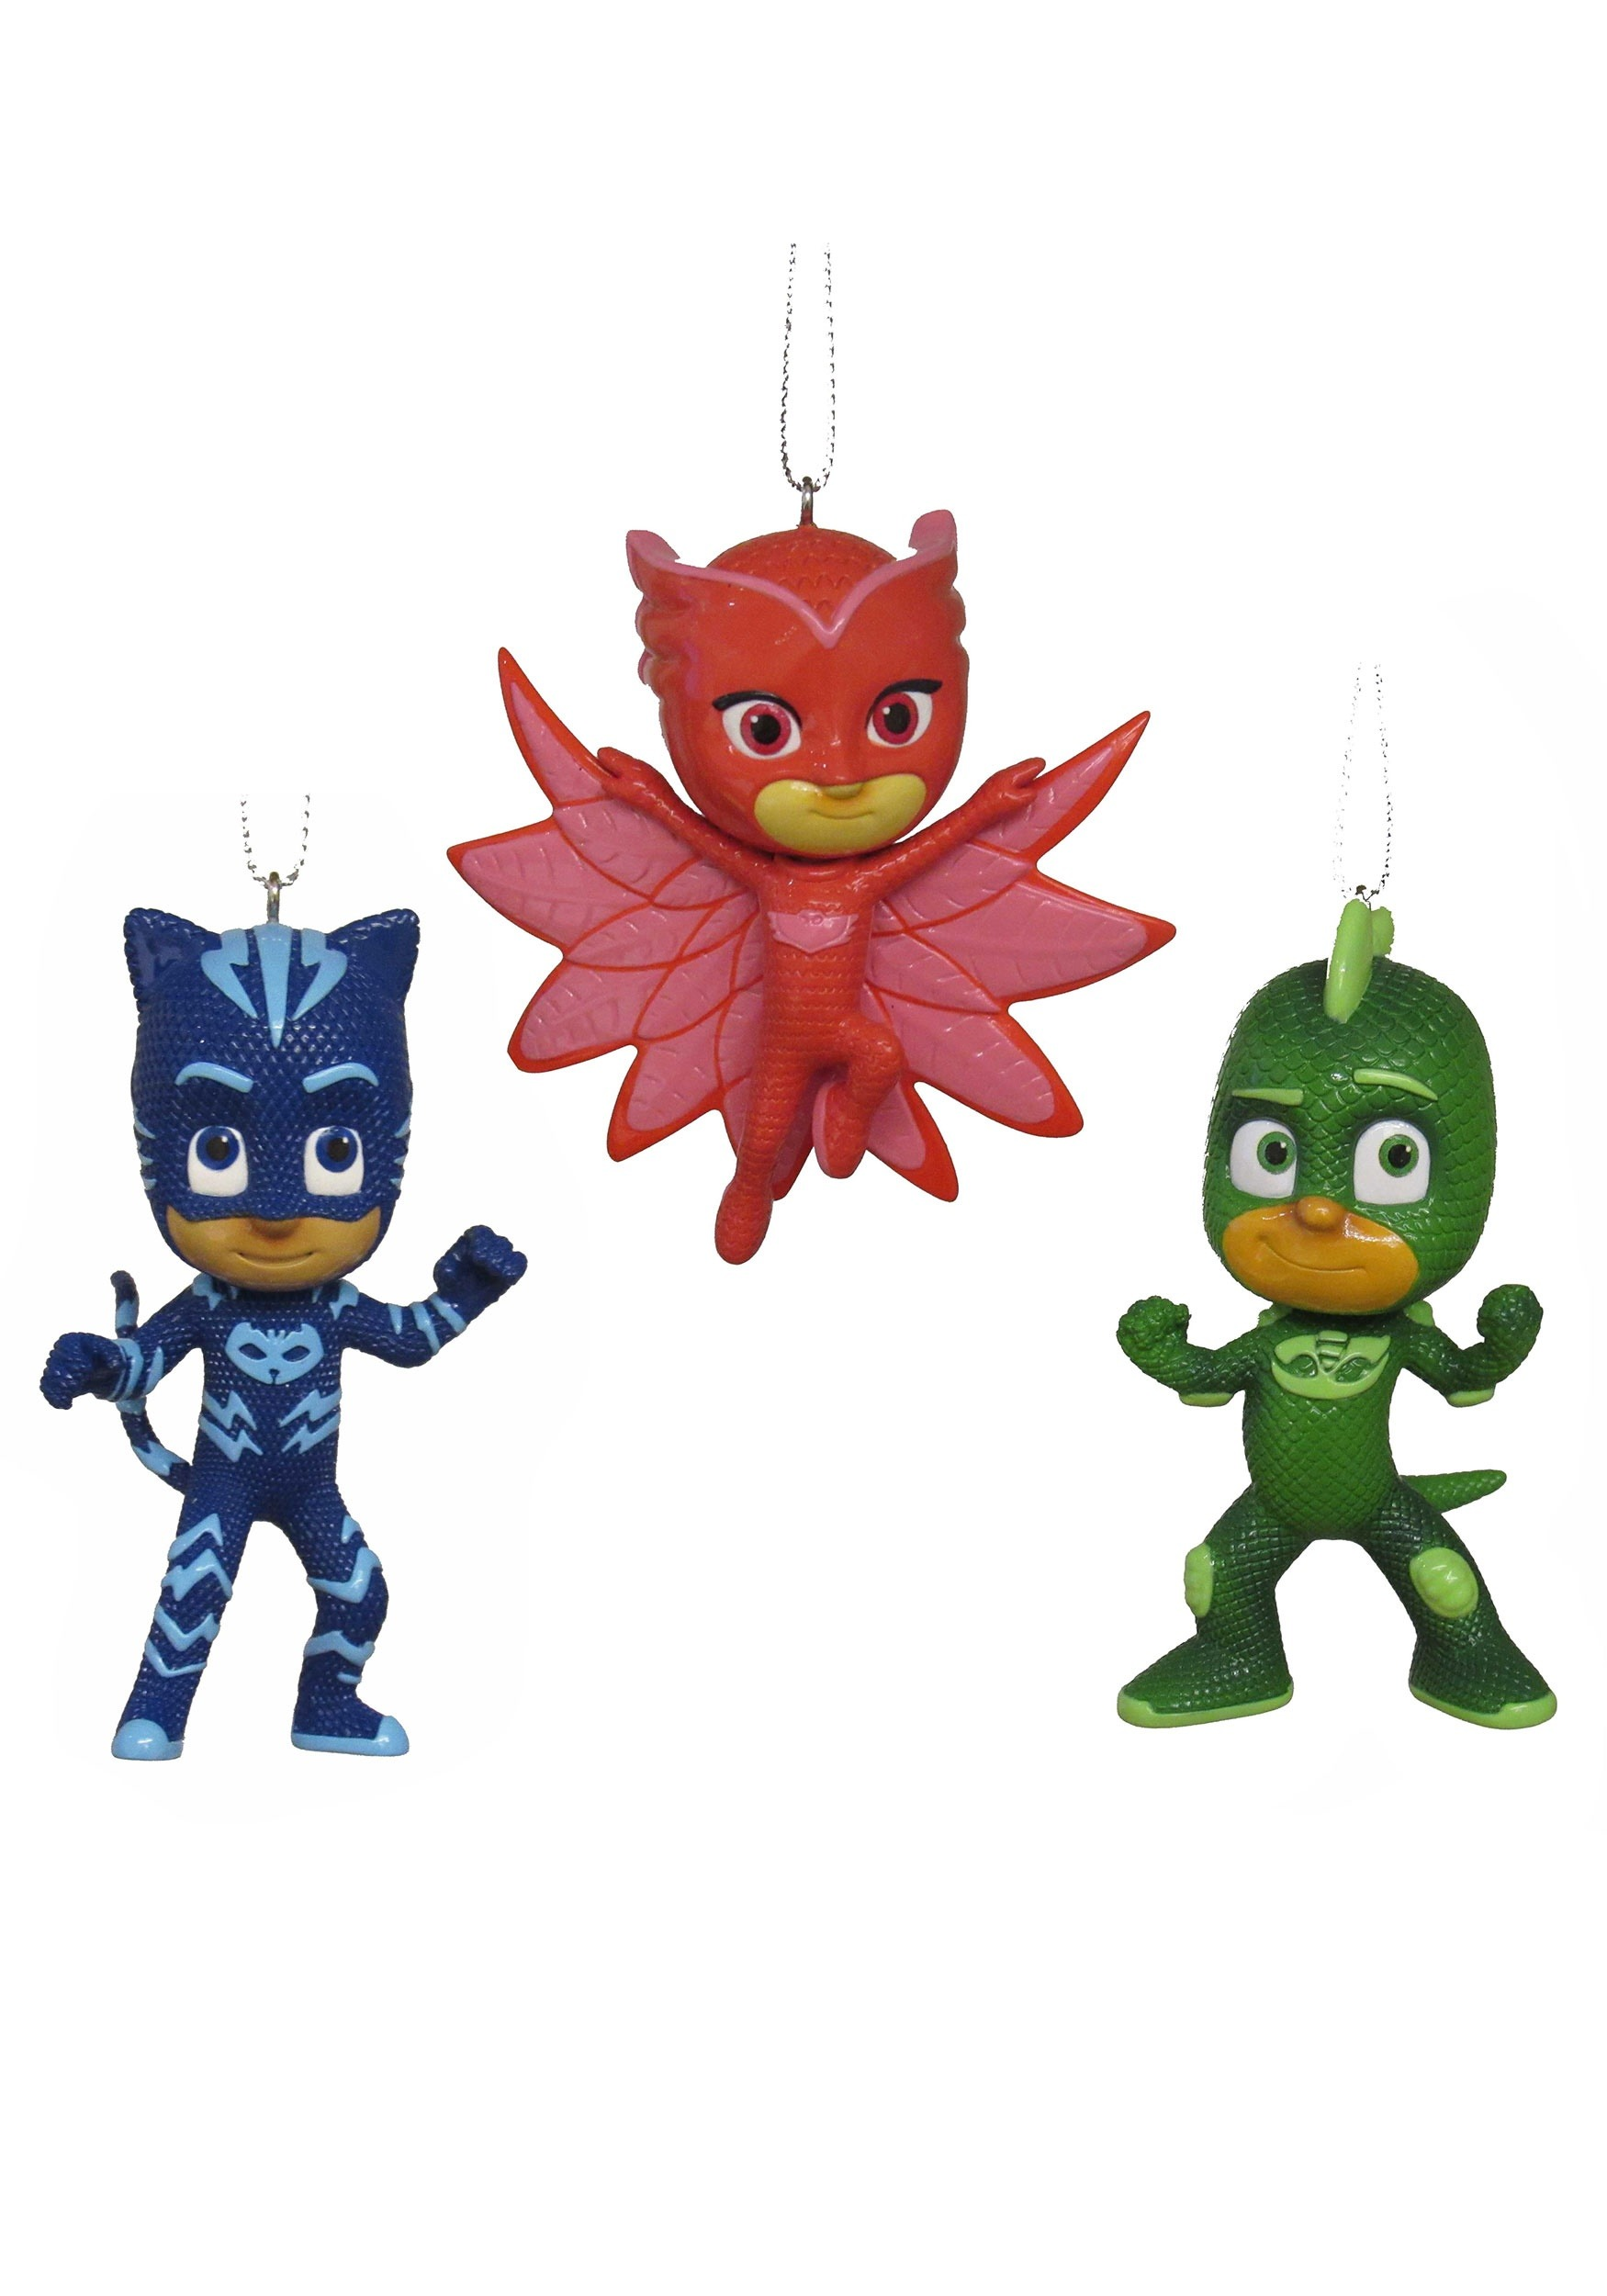 pj-masks-3-pack-ornament-set